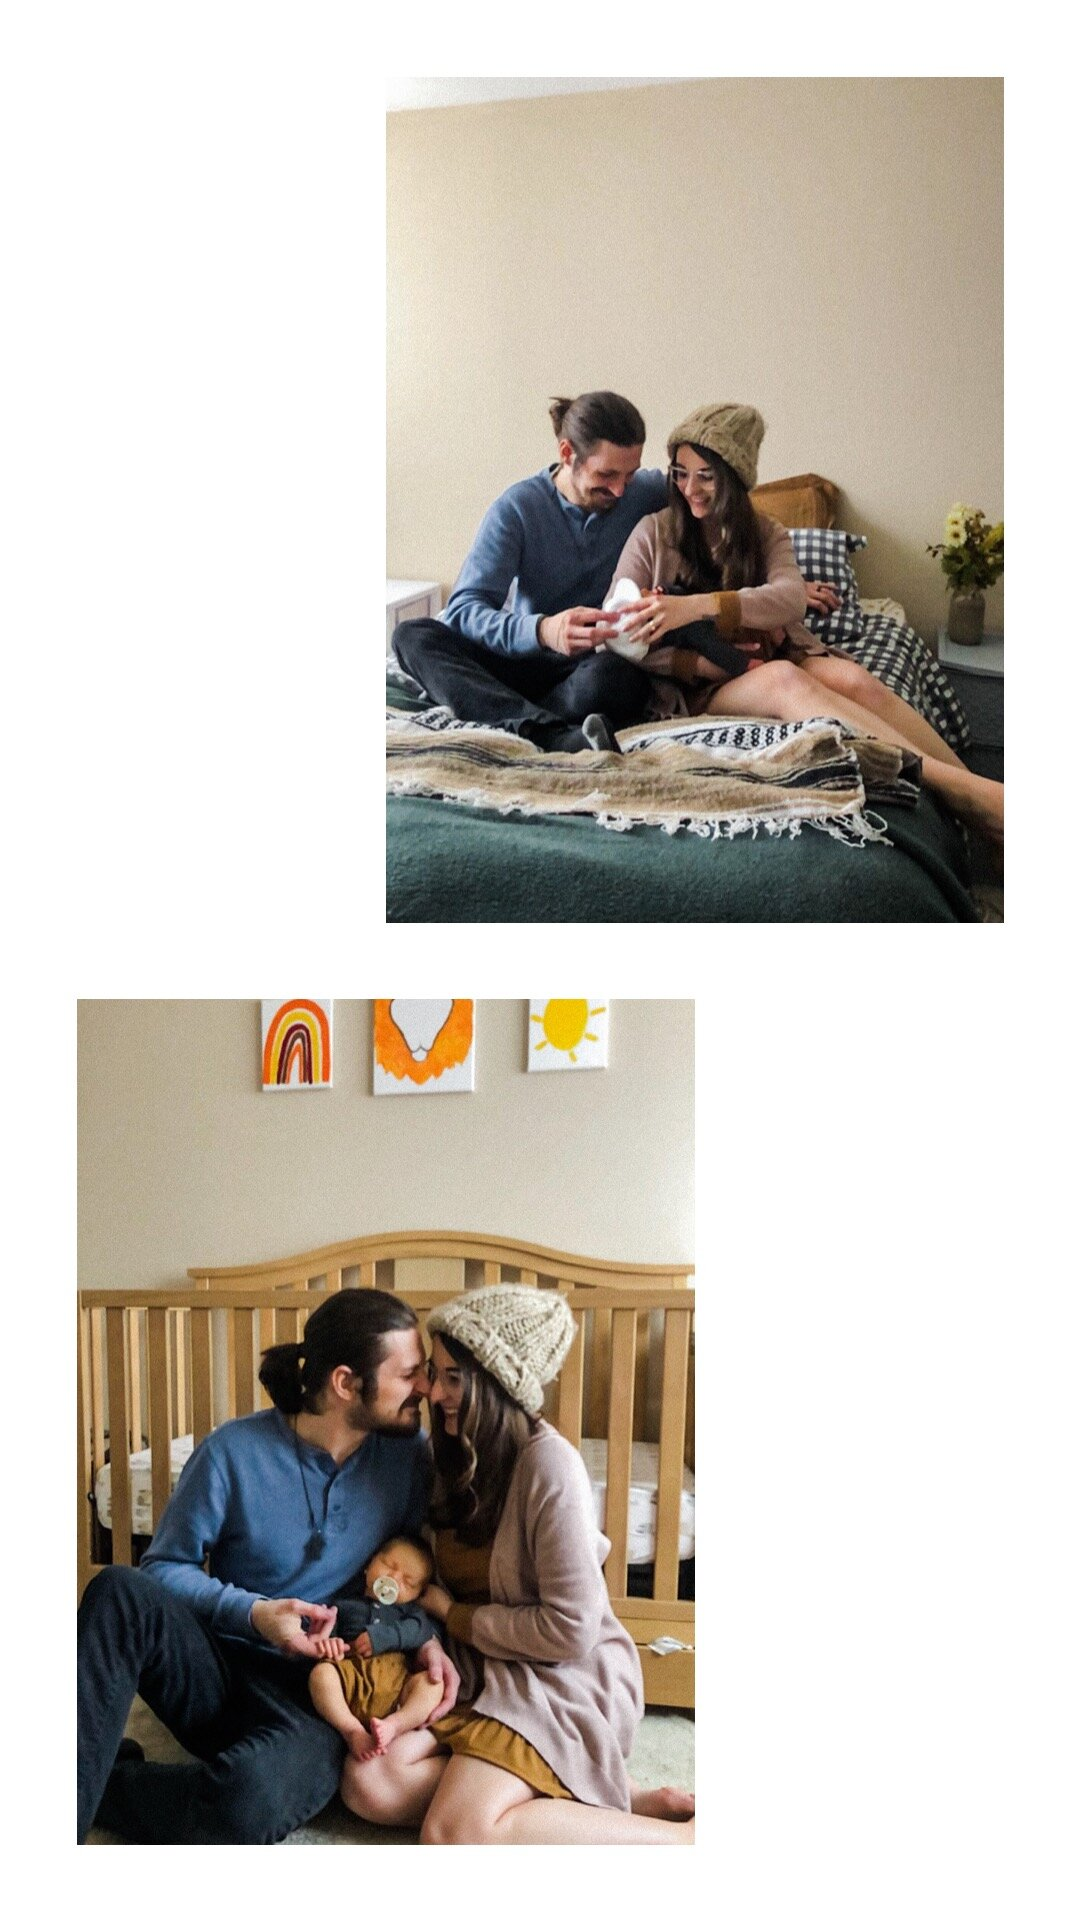 Young couple and newborn in their home. Photos taken via Facetime